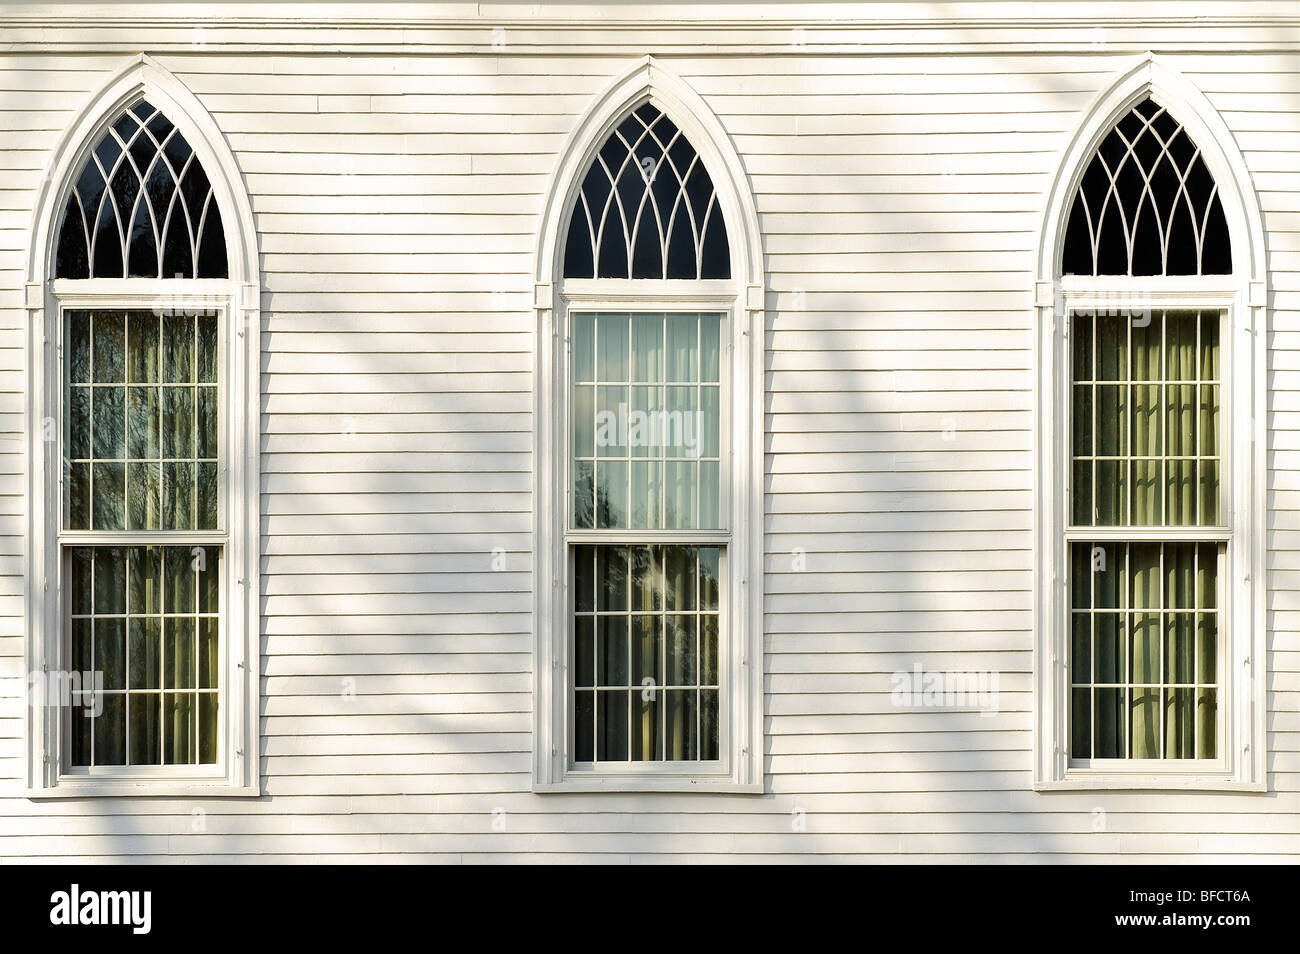 Church window detail. - Stock Image